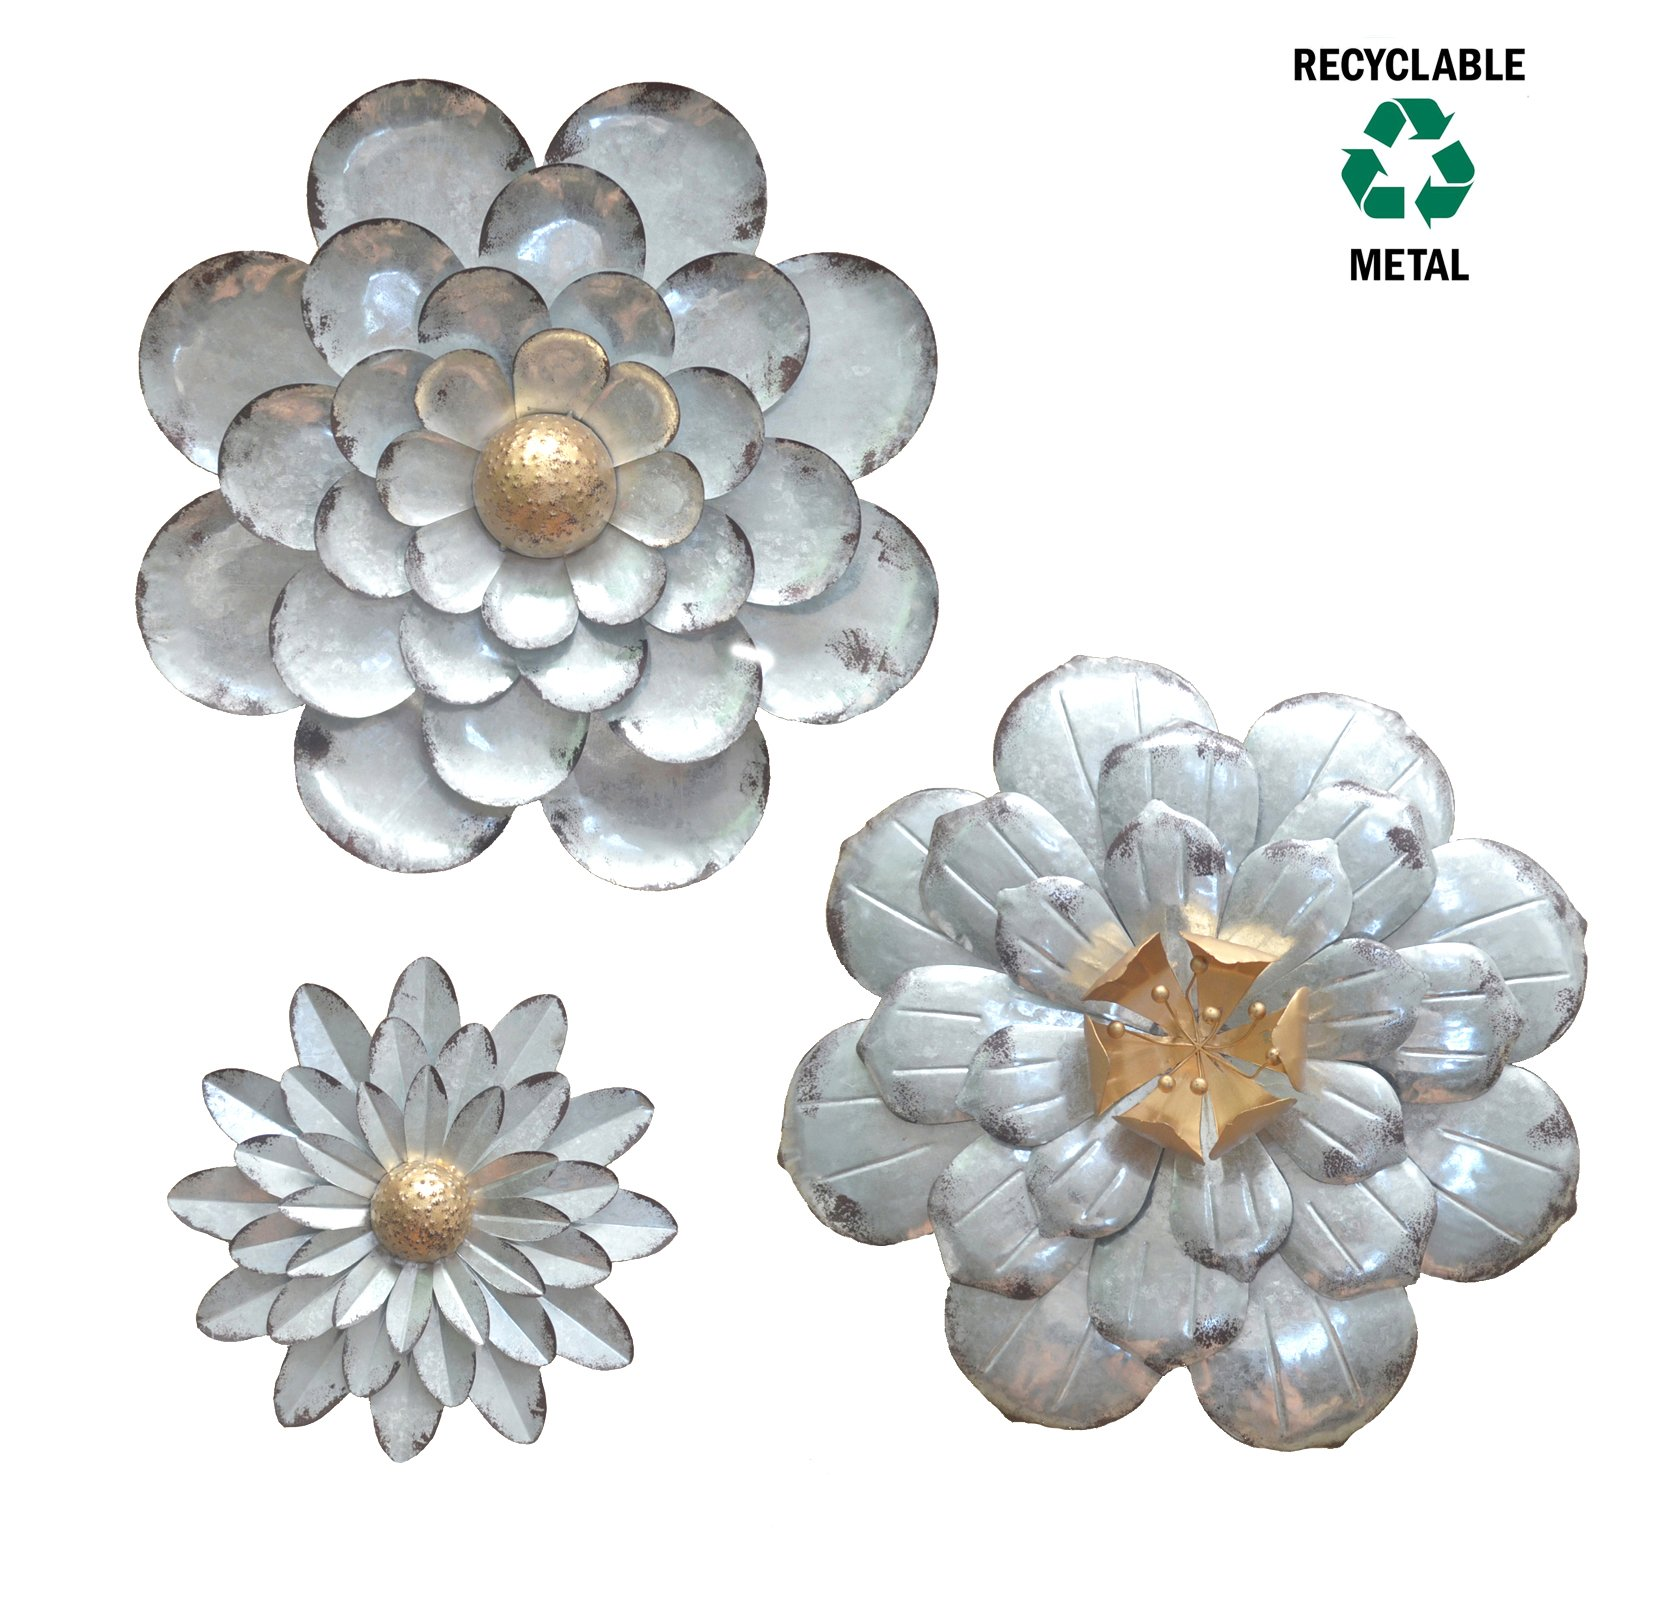 metal flower wall art Galvanized Flowers Wall Décor Set of 3 Metal Flower Wall Art by  metal flower wall art